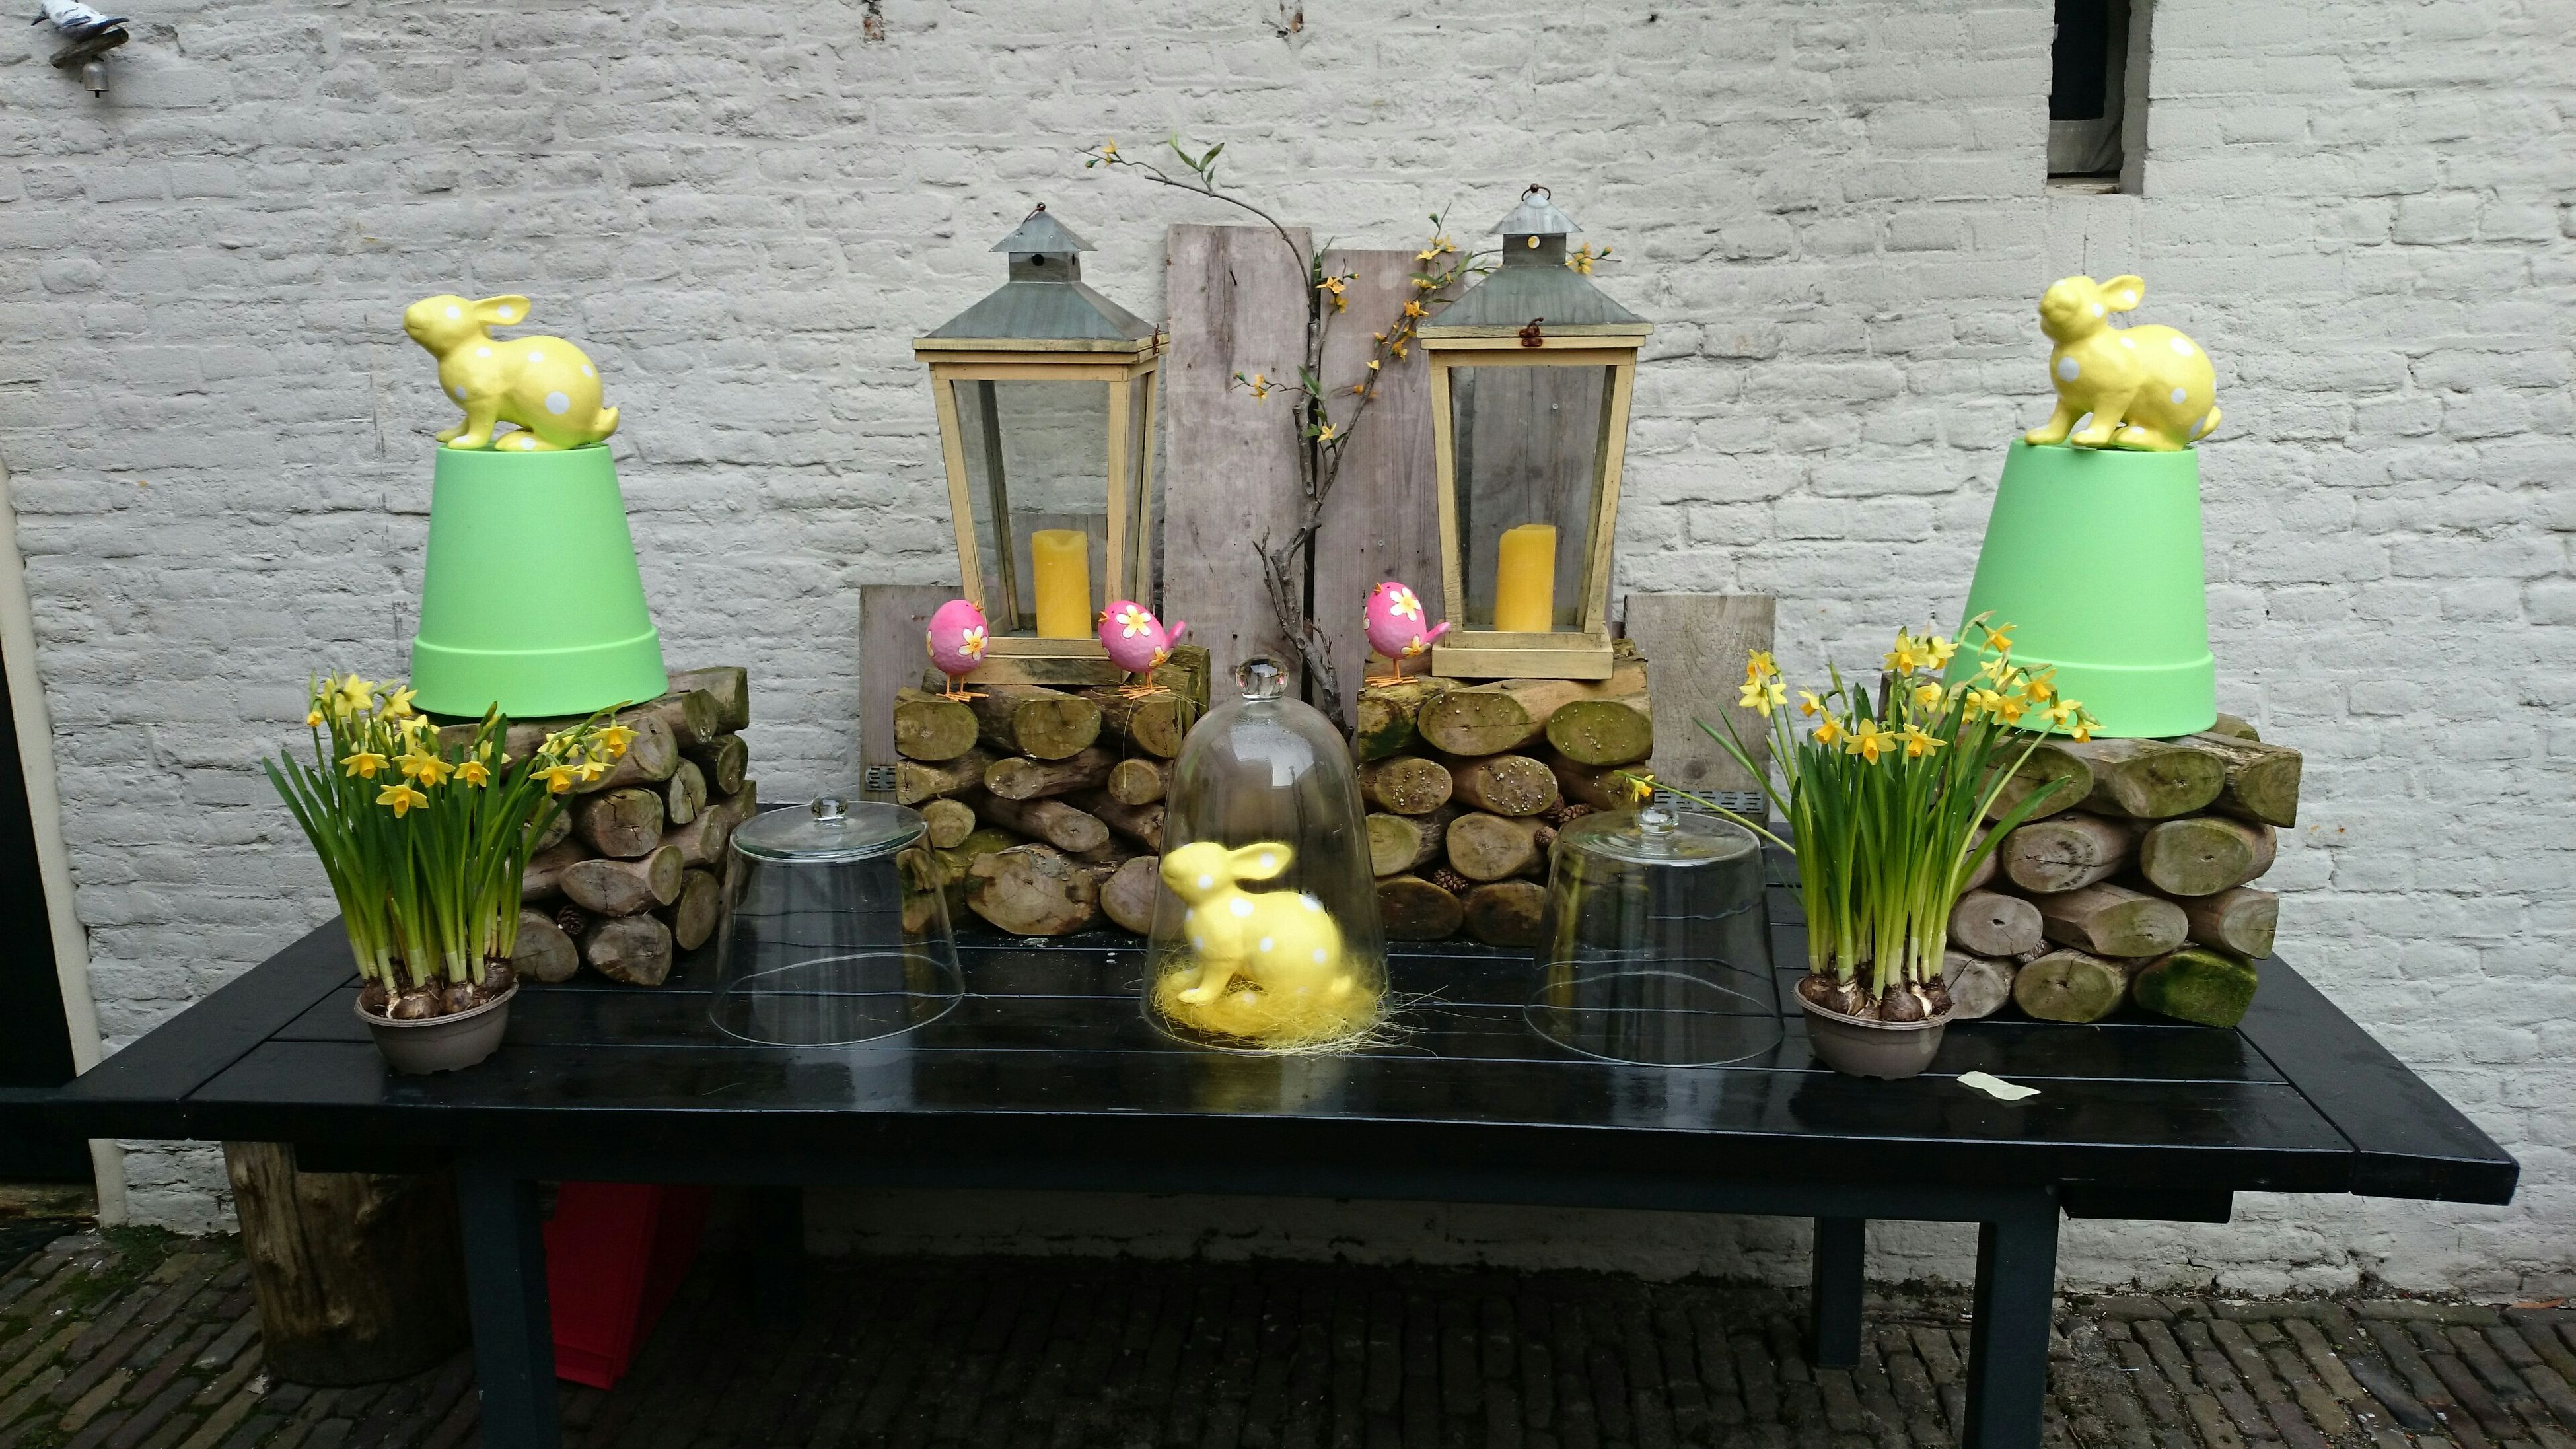 Easter is coming. The table is already read. People Watching Getting In Touch Excercising Escaping WorkTime Capturedmoment Relaxing Working Hard Netherlands Winter